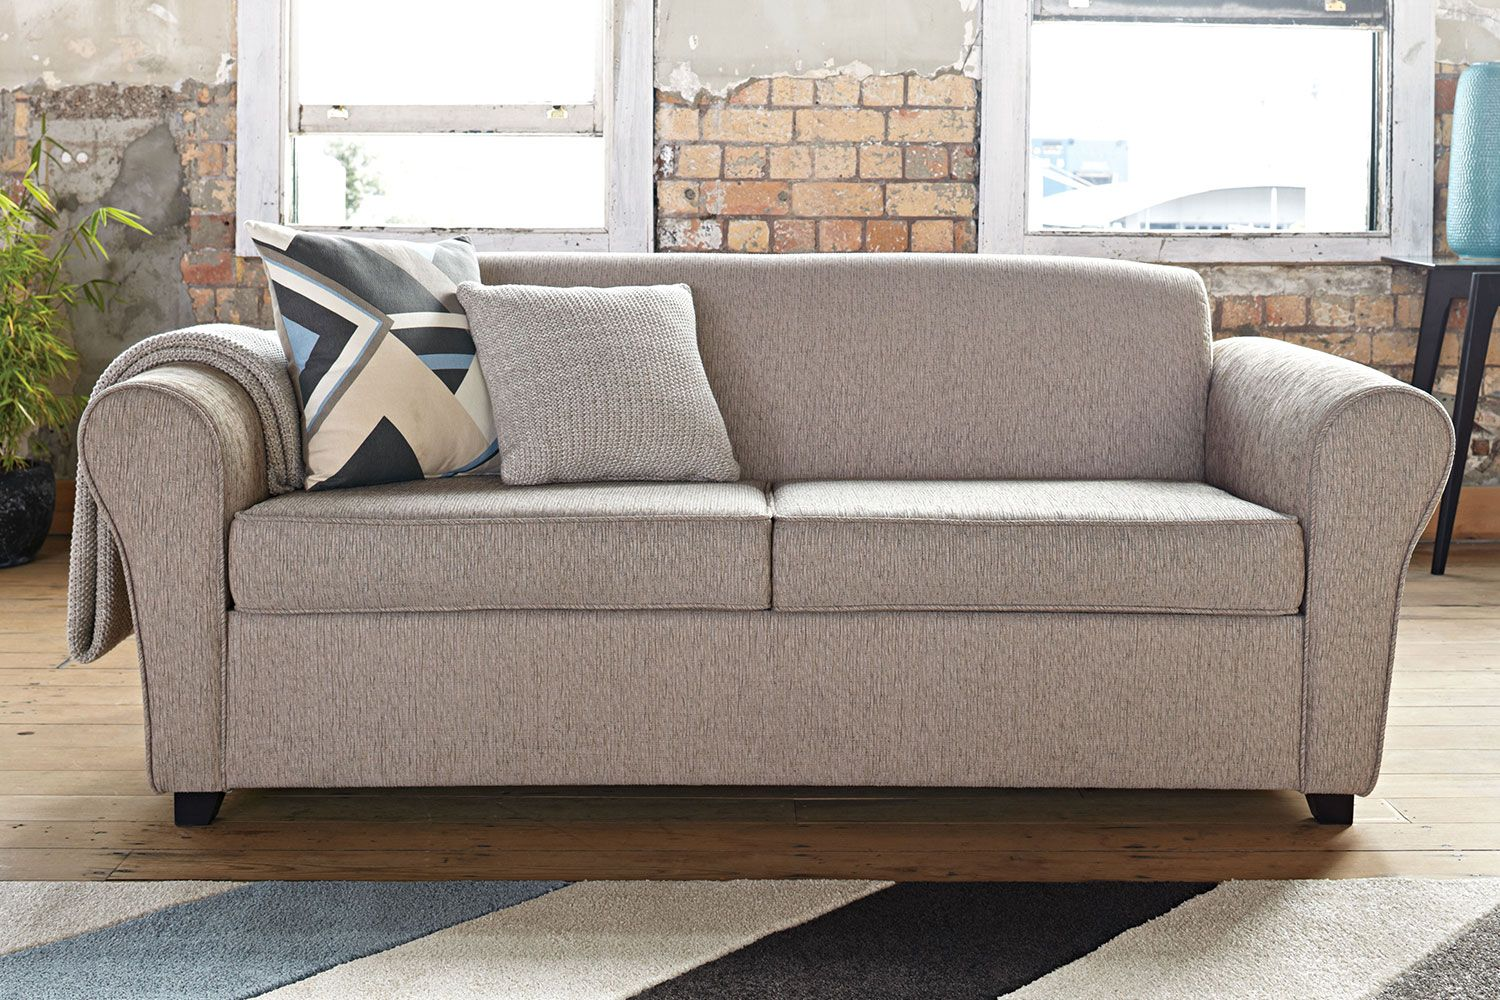 The Quinn Double Sofa Bed Provides A Spacious Comfortable Pull Out Bed To Keep Your Guests Comfortable And Content When Not In Use Sofa Sofa Bed Stylish Sofa